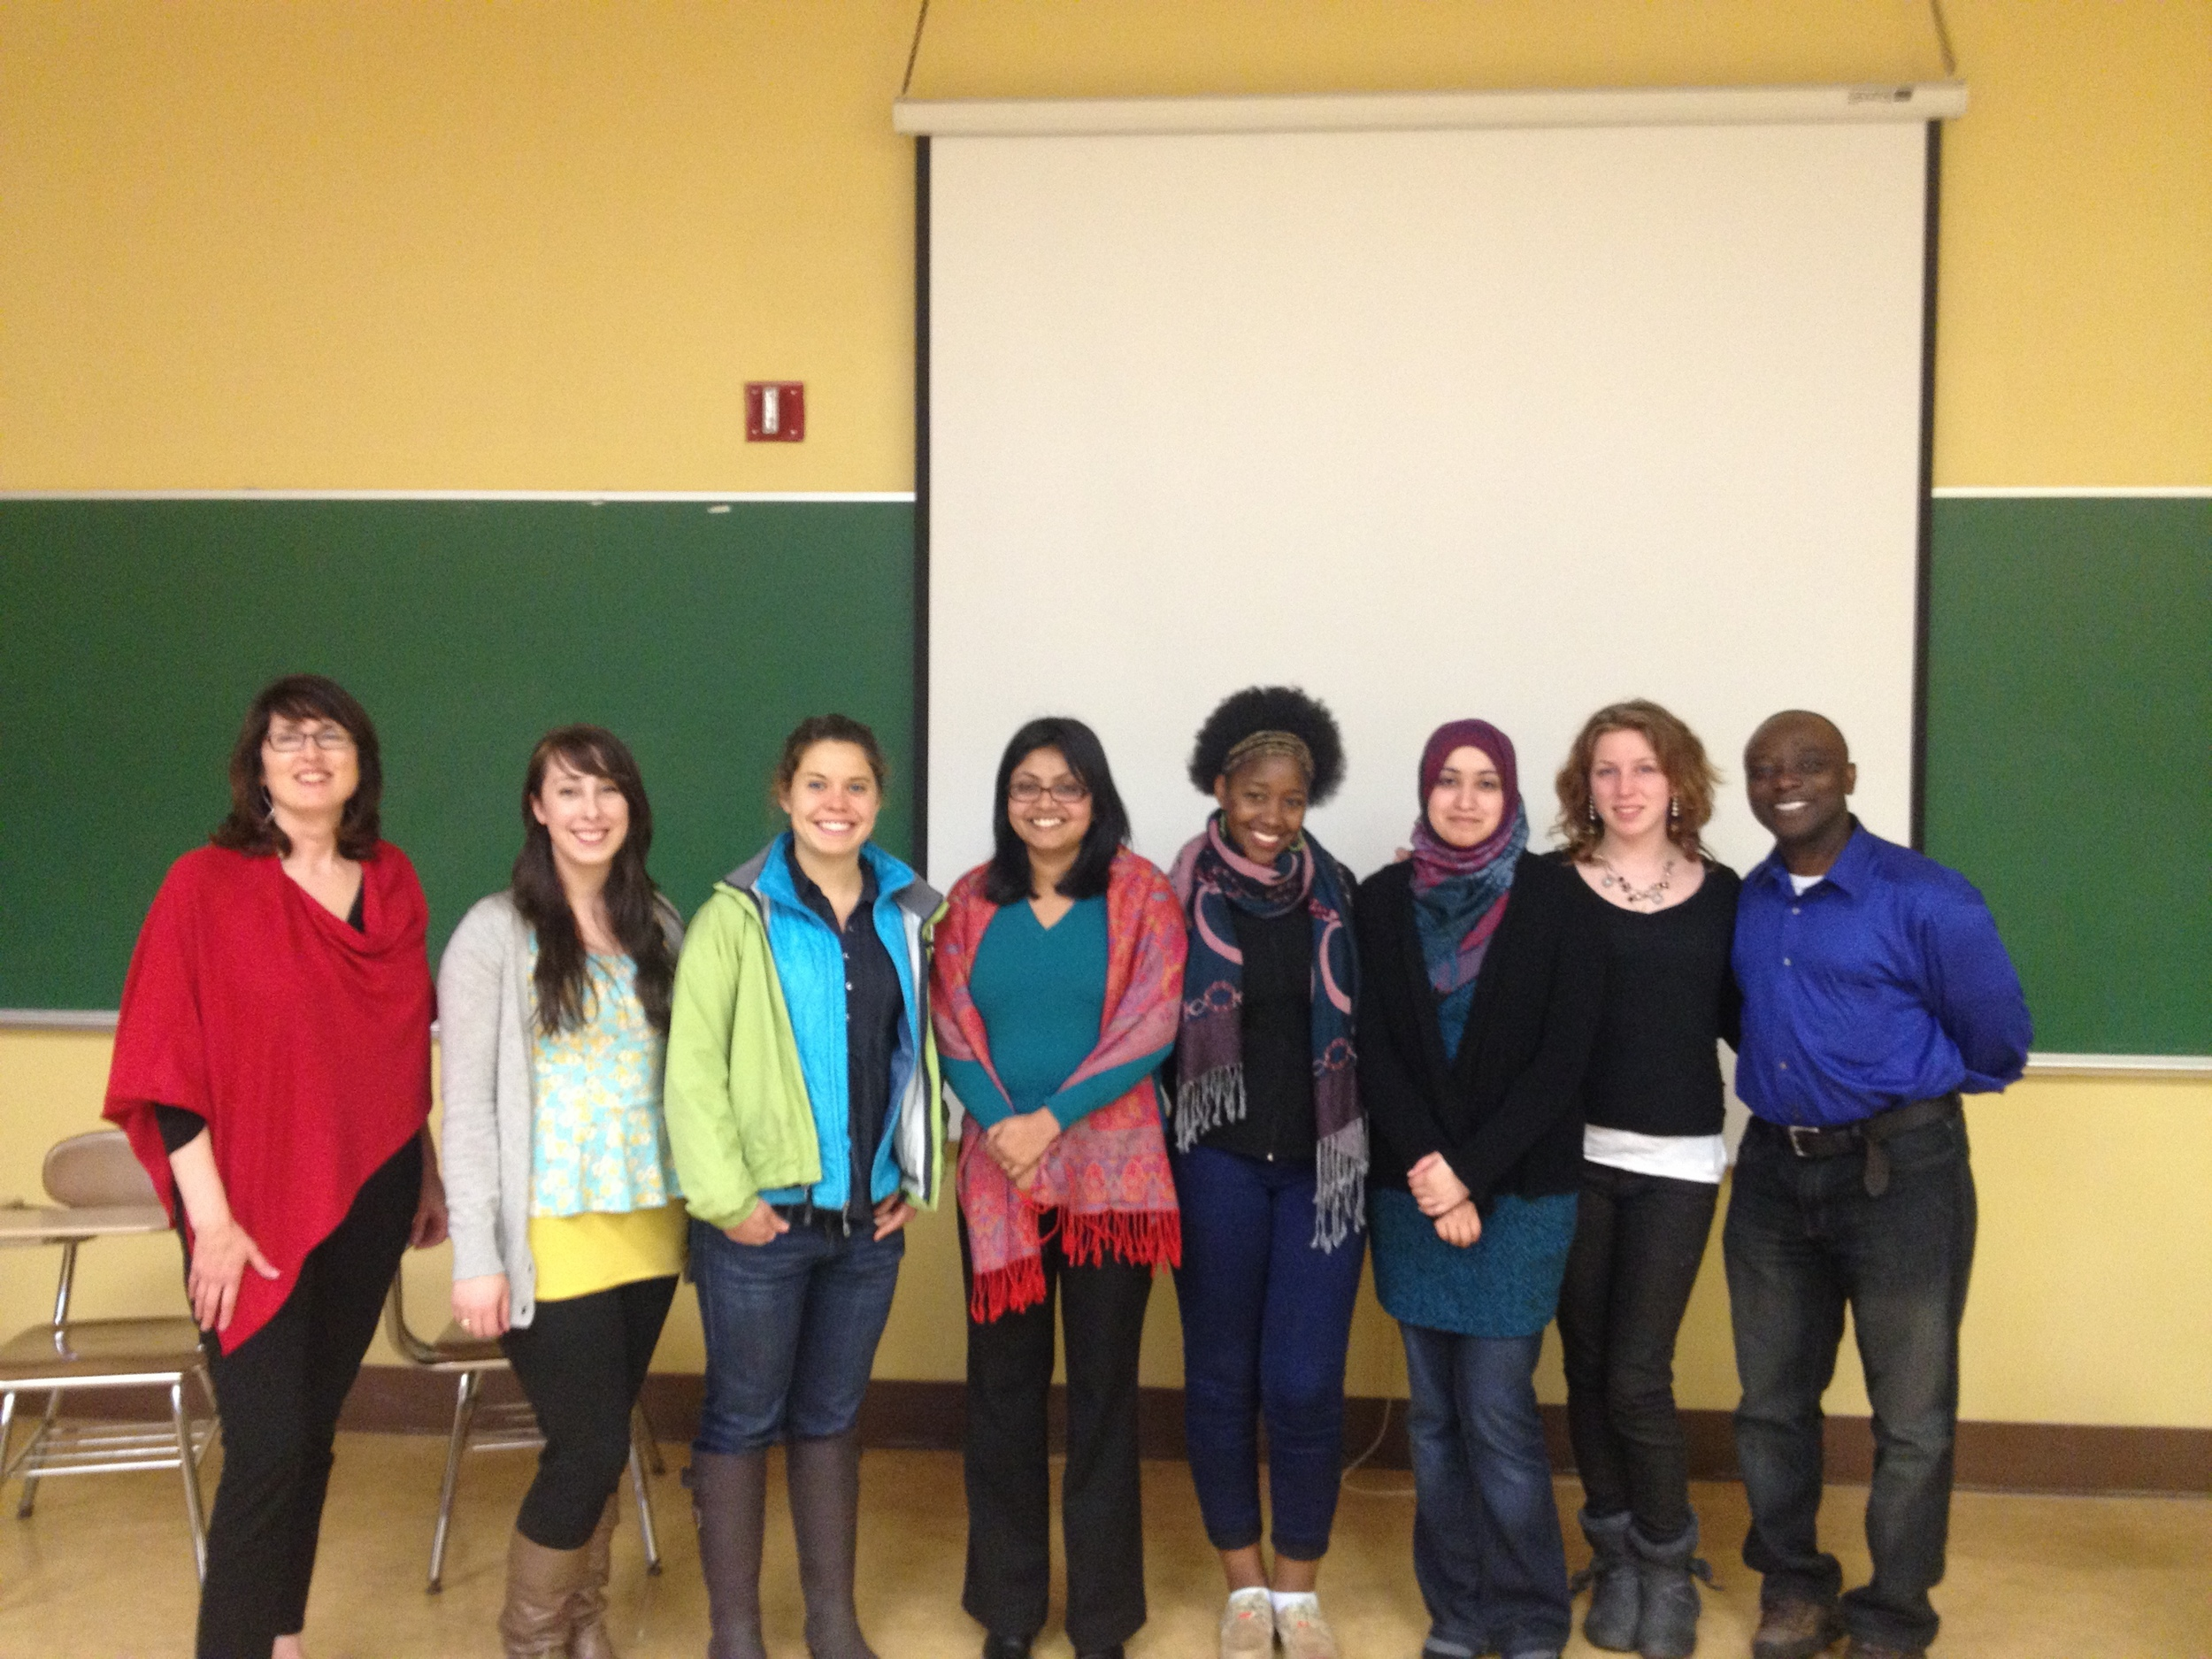 The Everyday Peace Group at the Open Peace Forum following Boston marathon Bombings - April 2013